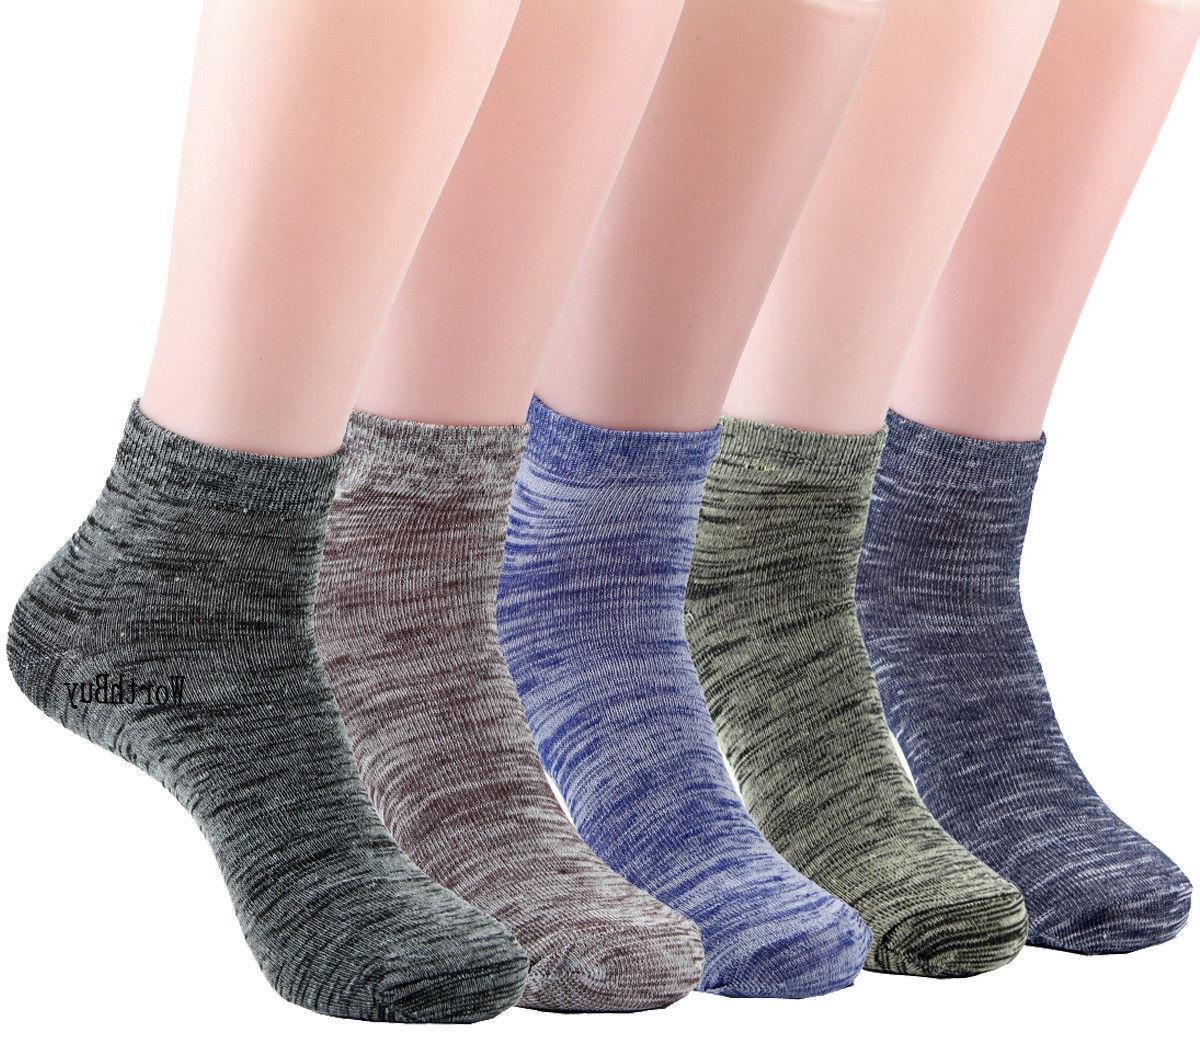 new 6 pairs mens womens ankle quarter